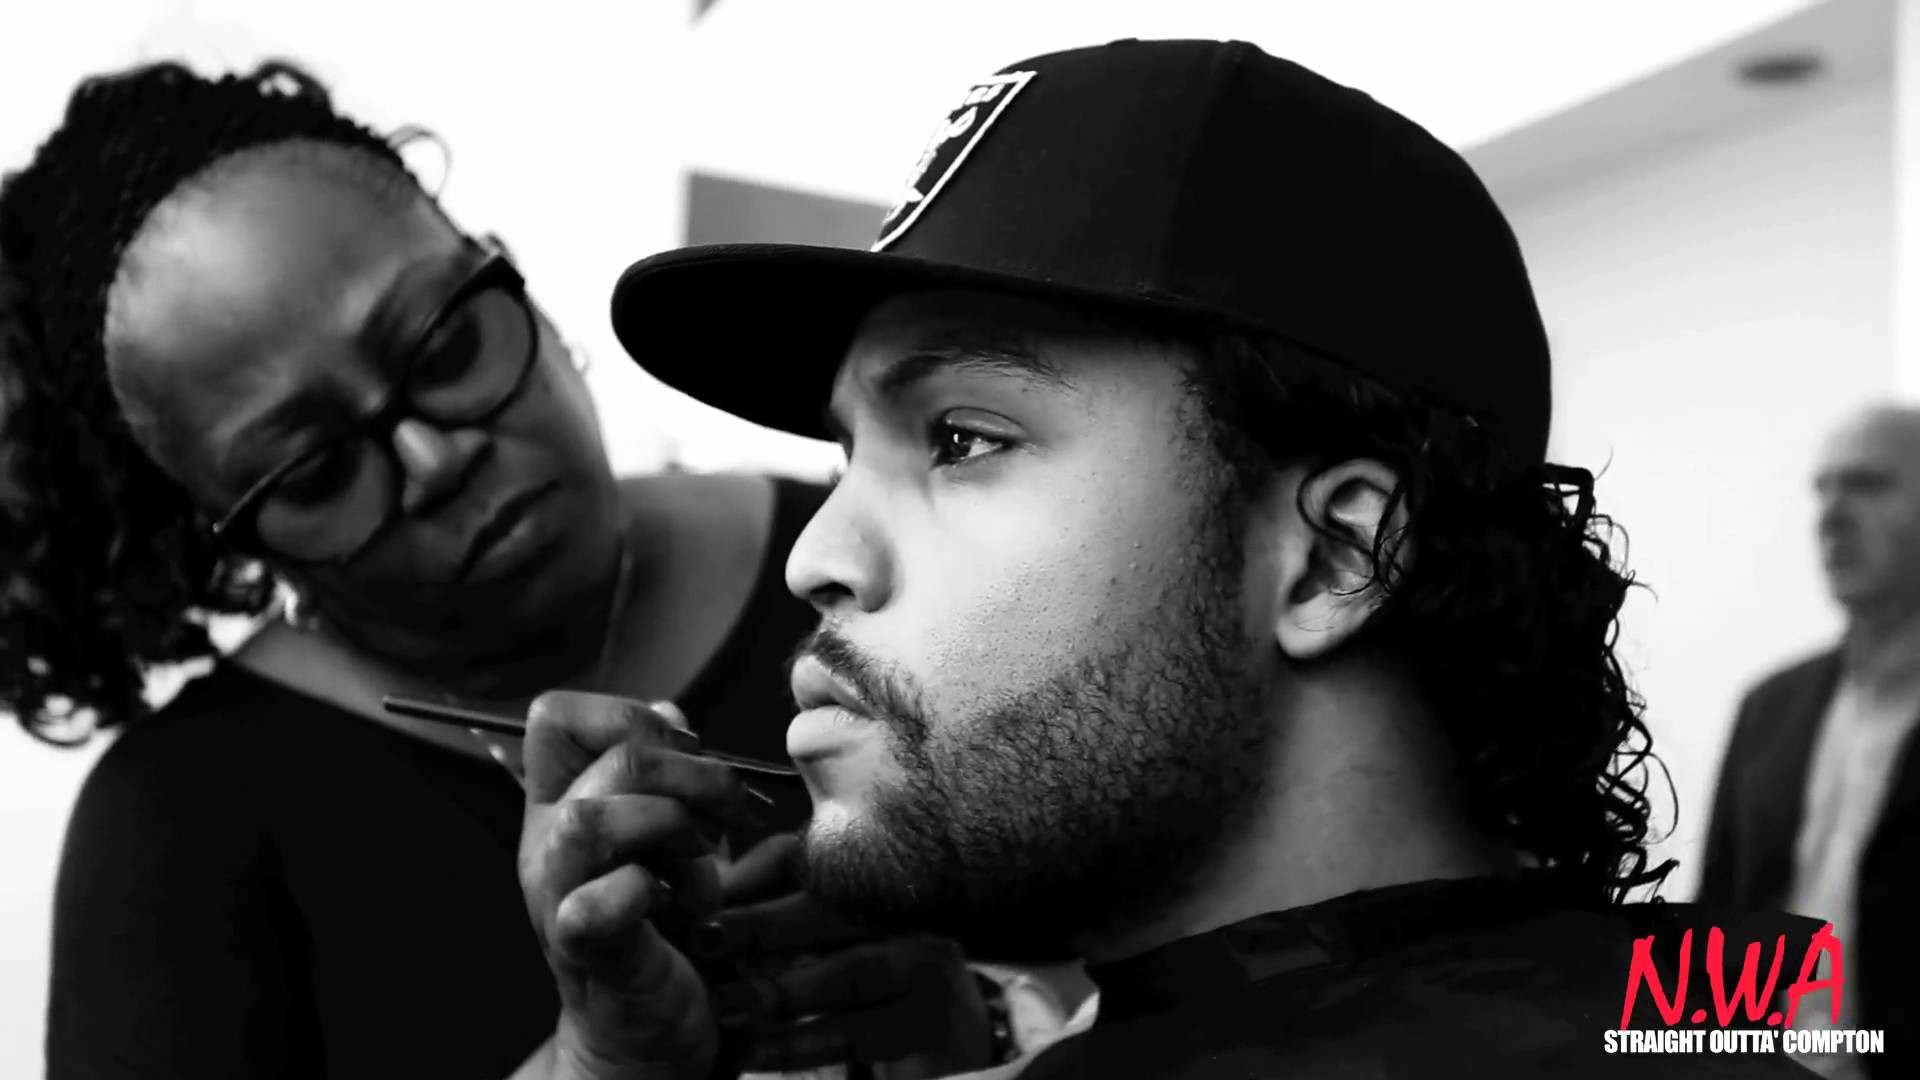 Straight Outta Compton Photo Shoot [Behind the Scenes] – YouTube